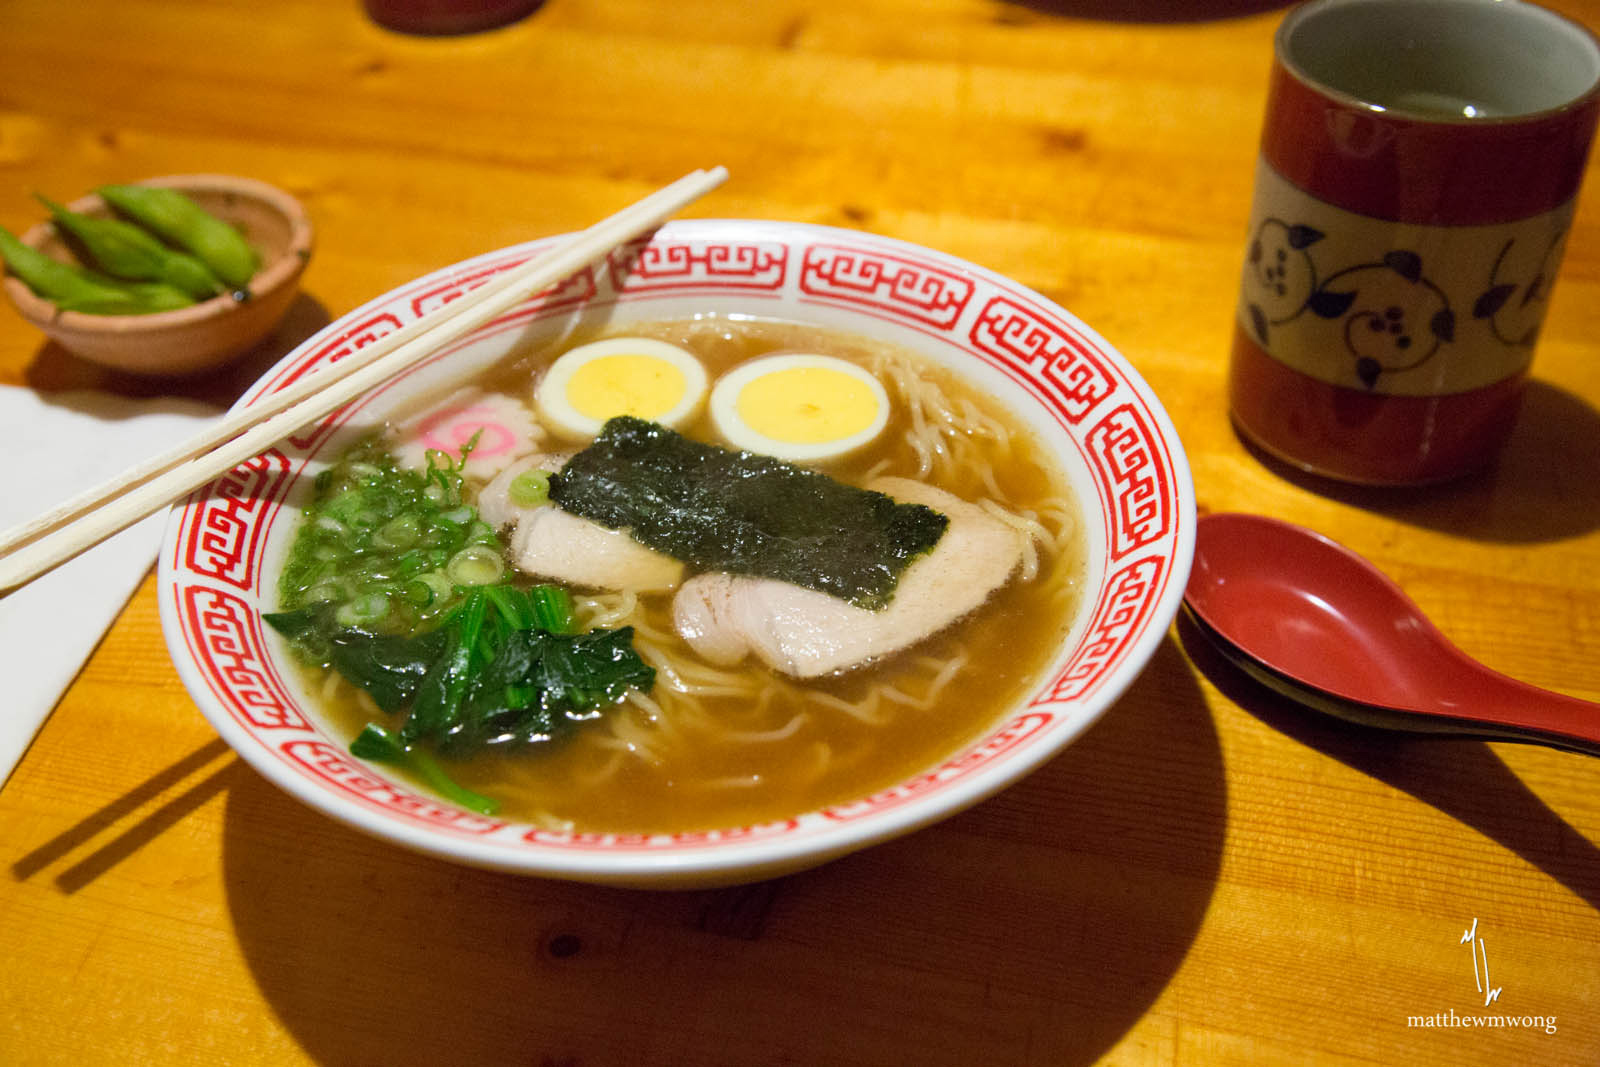 Noodles in a meat broth with slices of pork, spinach, and fish cake